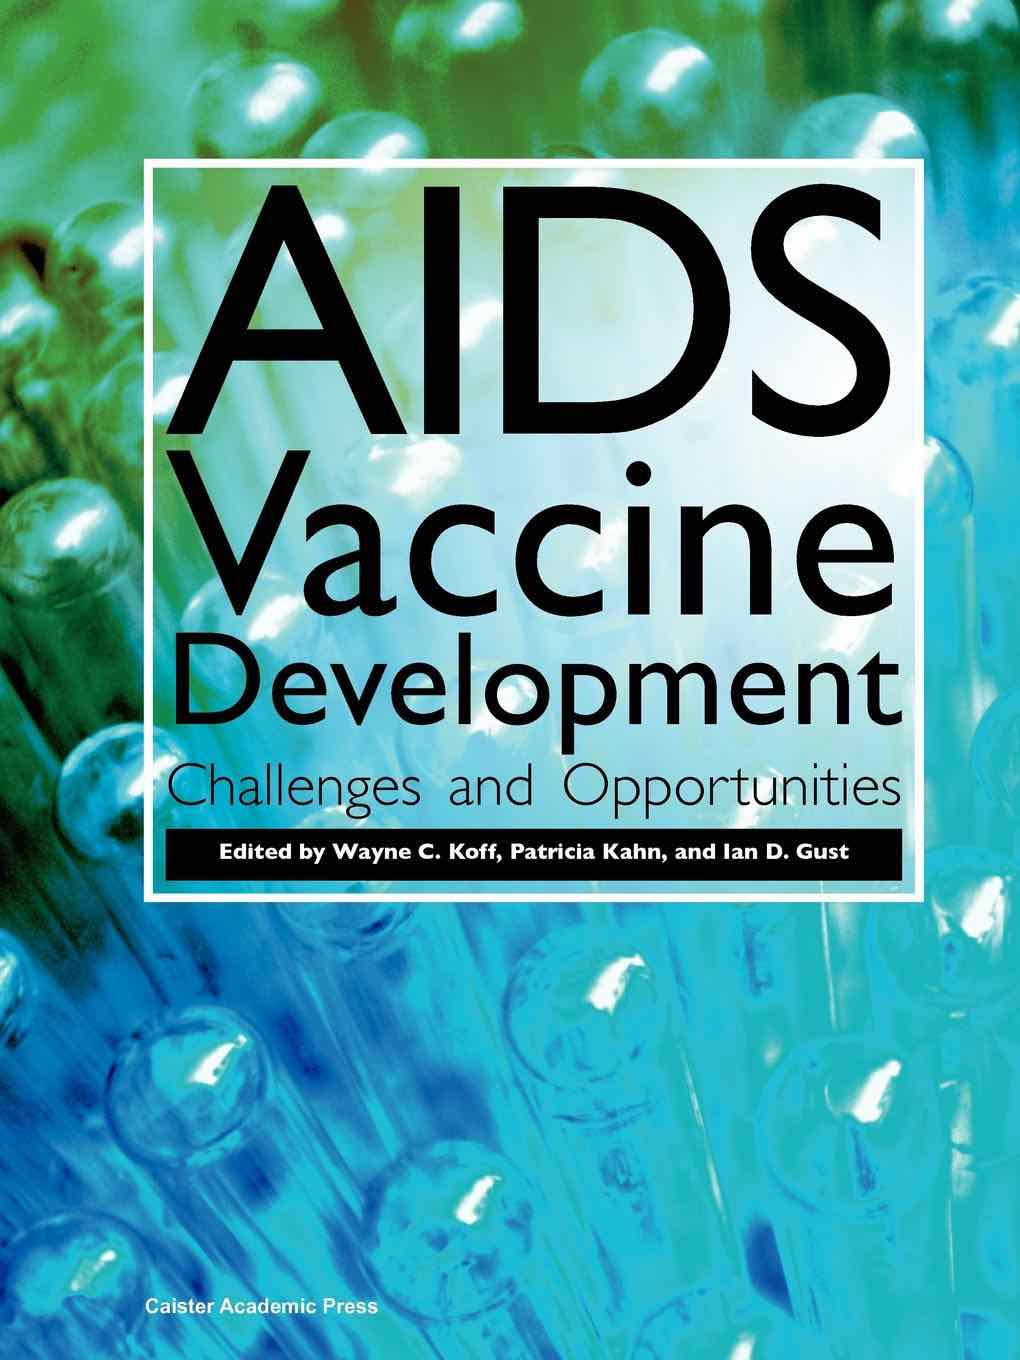 AIDS Vaccine Development: Challenges and Opportunities